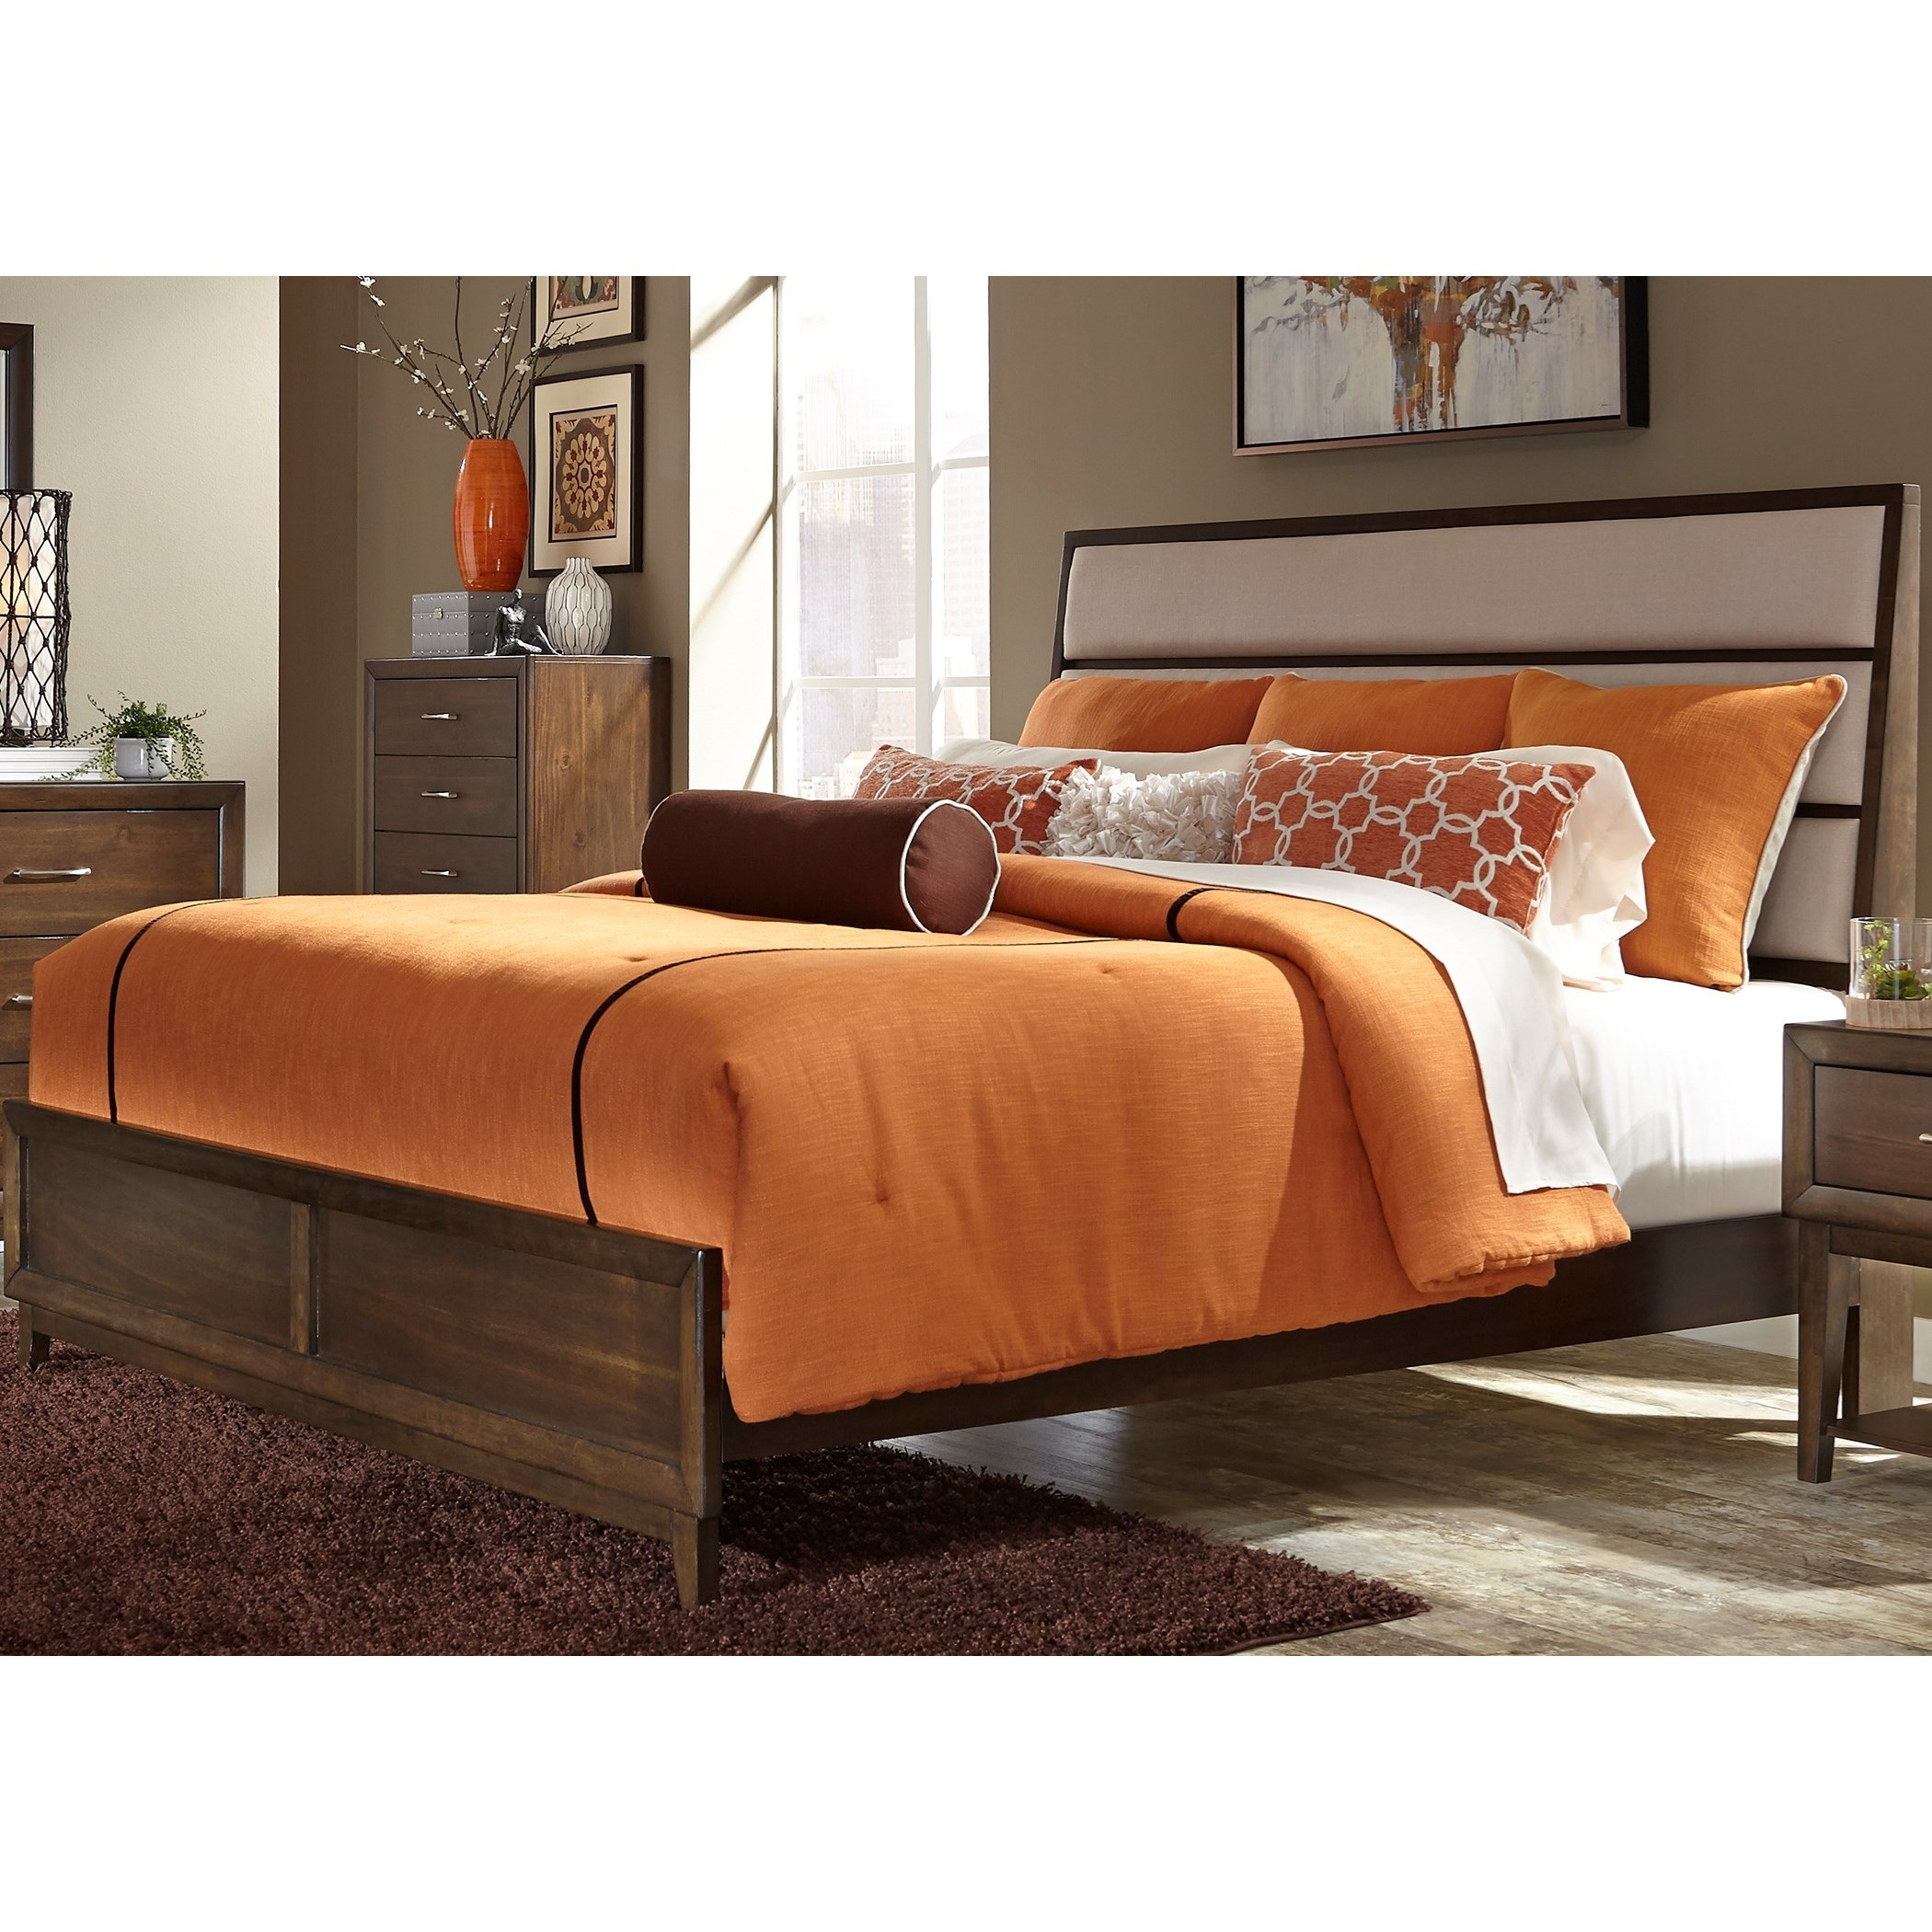 Liberty furniture hudson square bedroom 365 br qpb queen for Furniture 365 direct